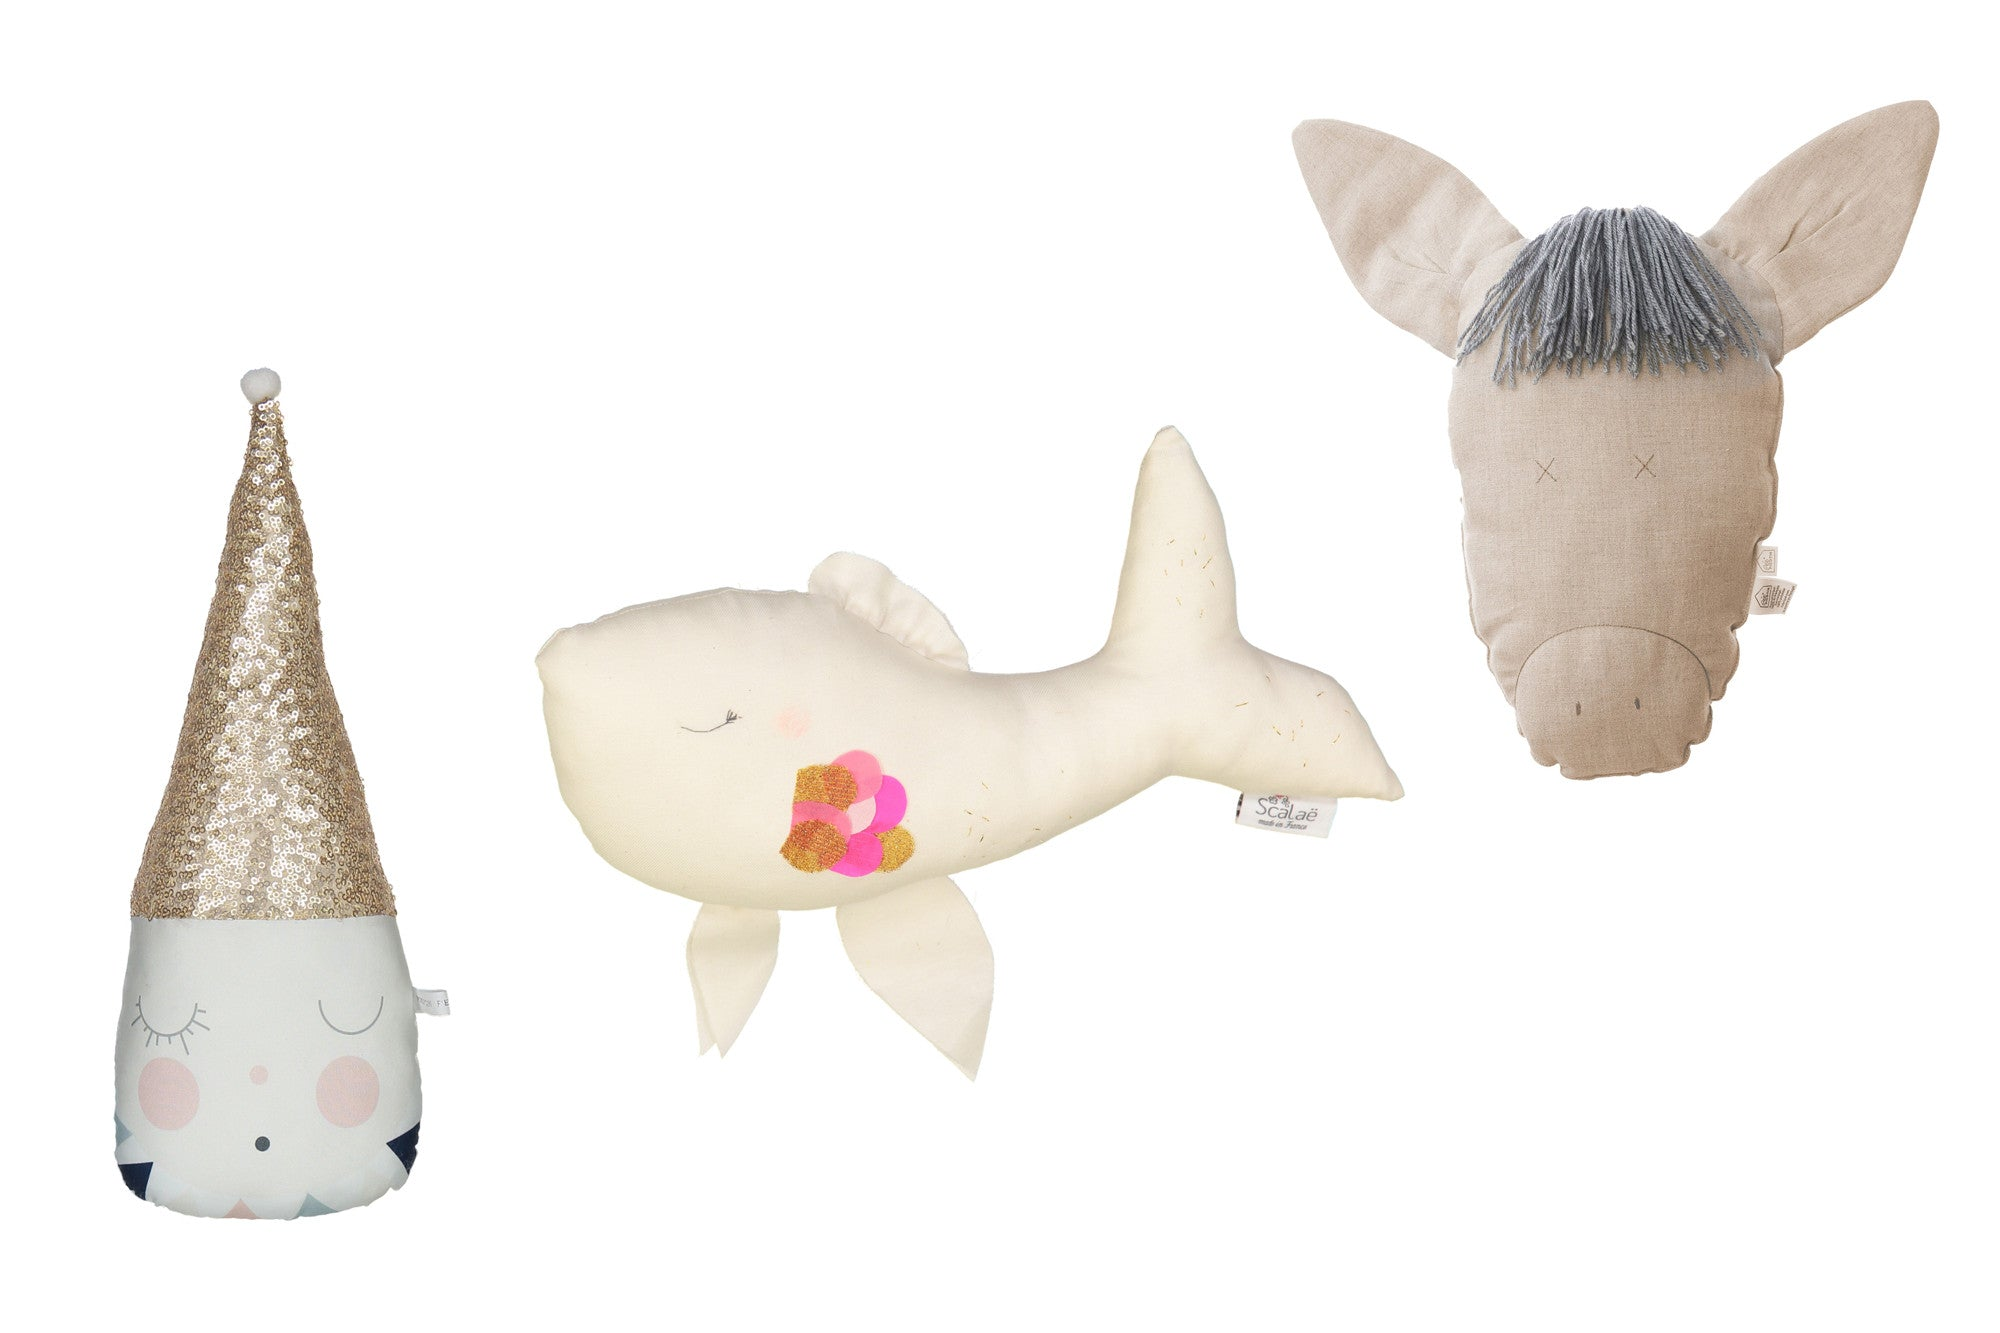 Pompon Petillant Clown, Scalae Fish, Petit Picotin Jeanne Donkey, available at Bobby Rabbit.